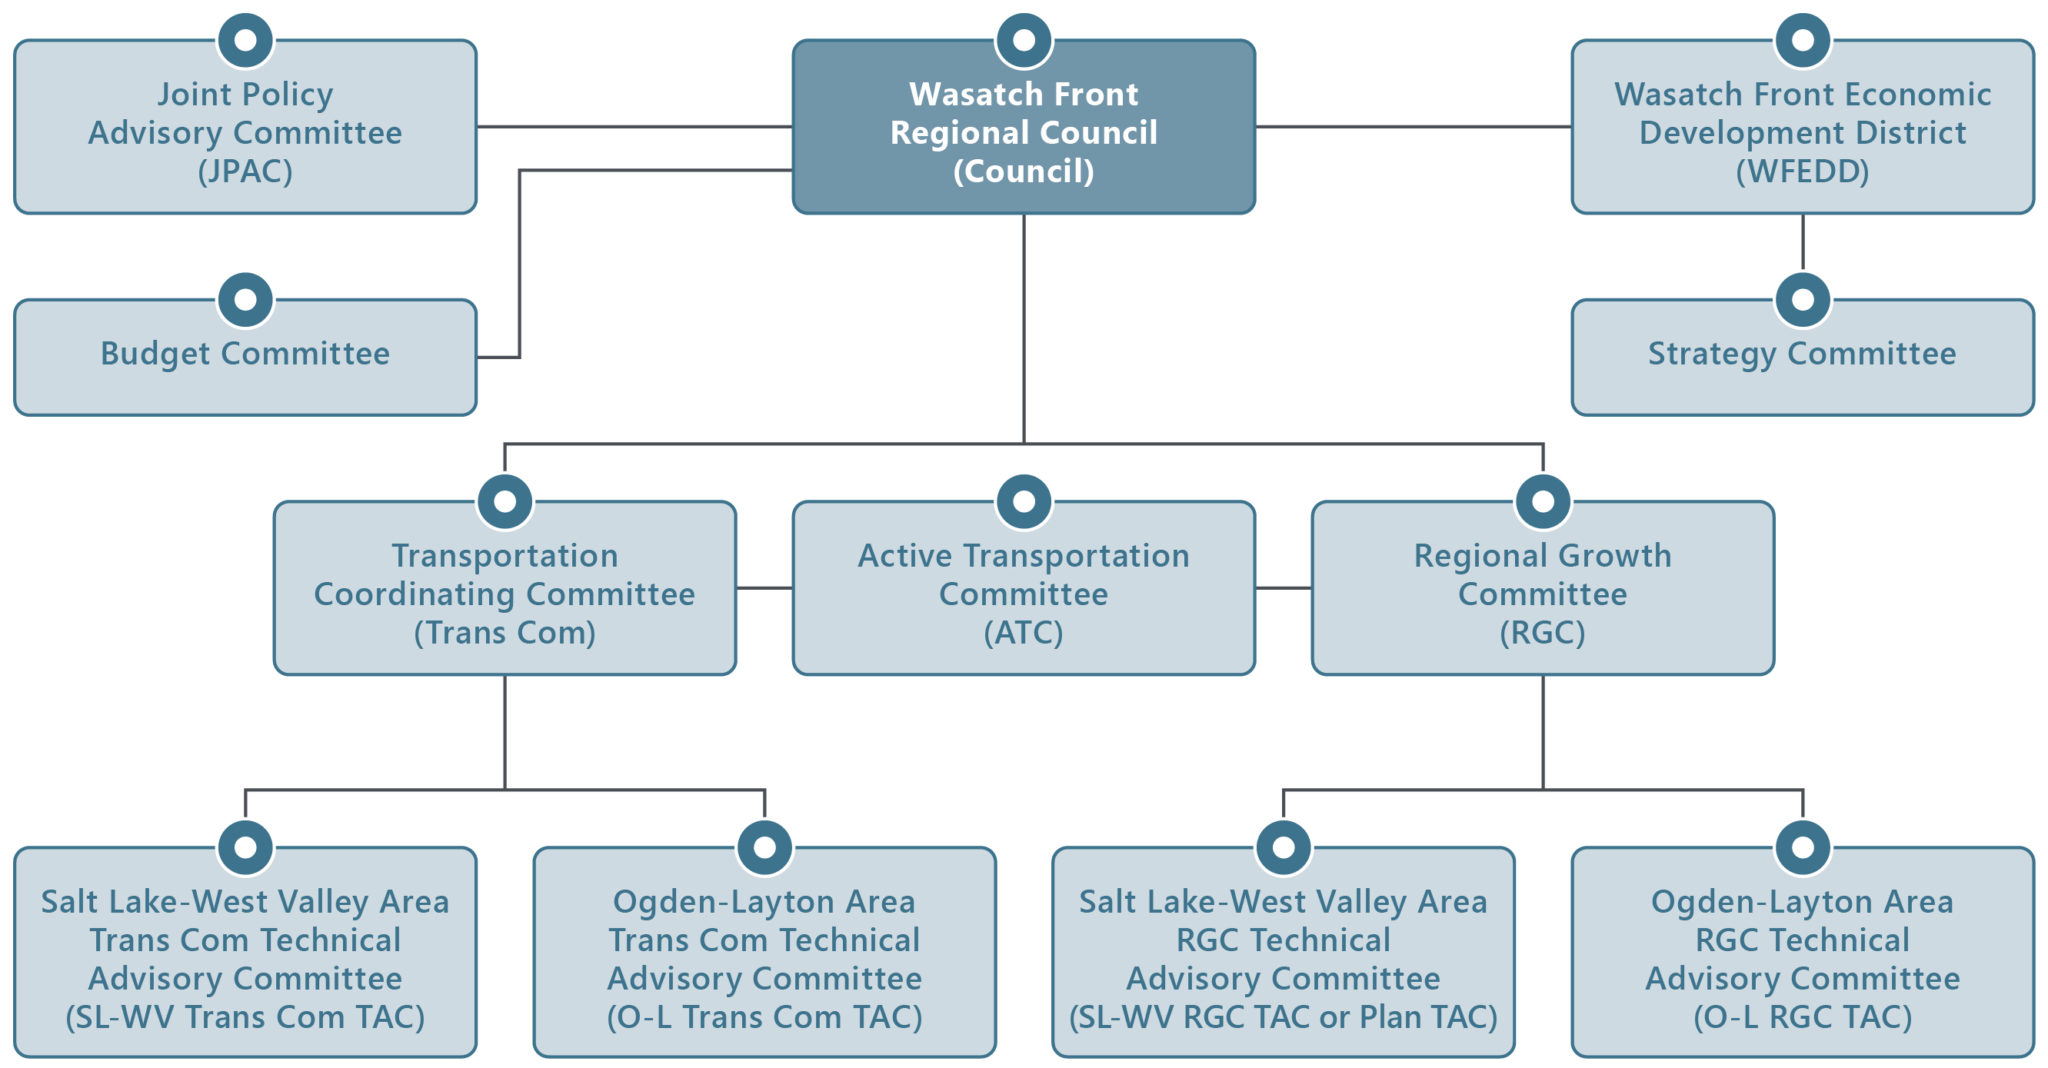 Committee structure chart.